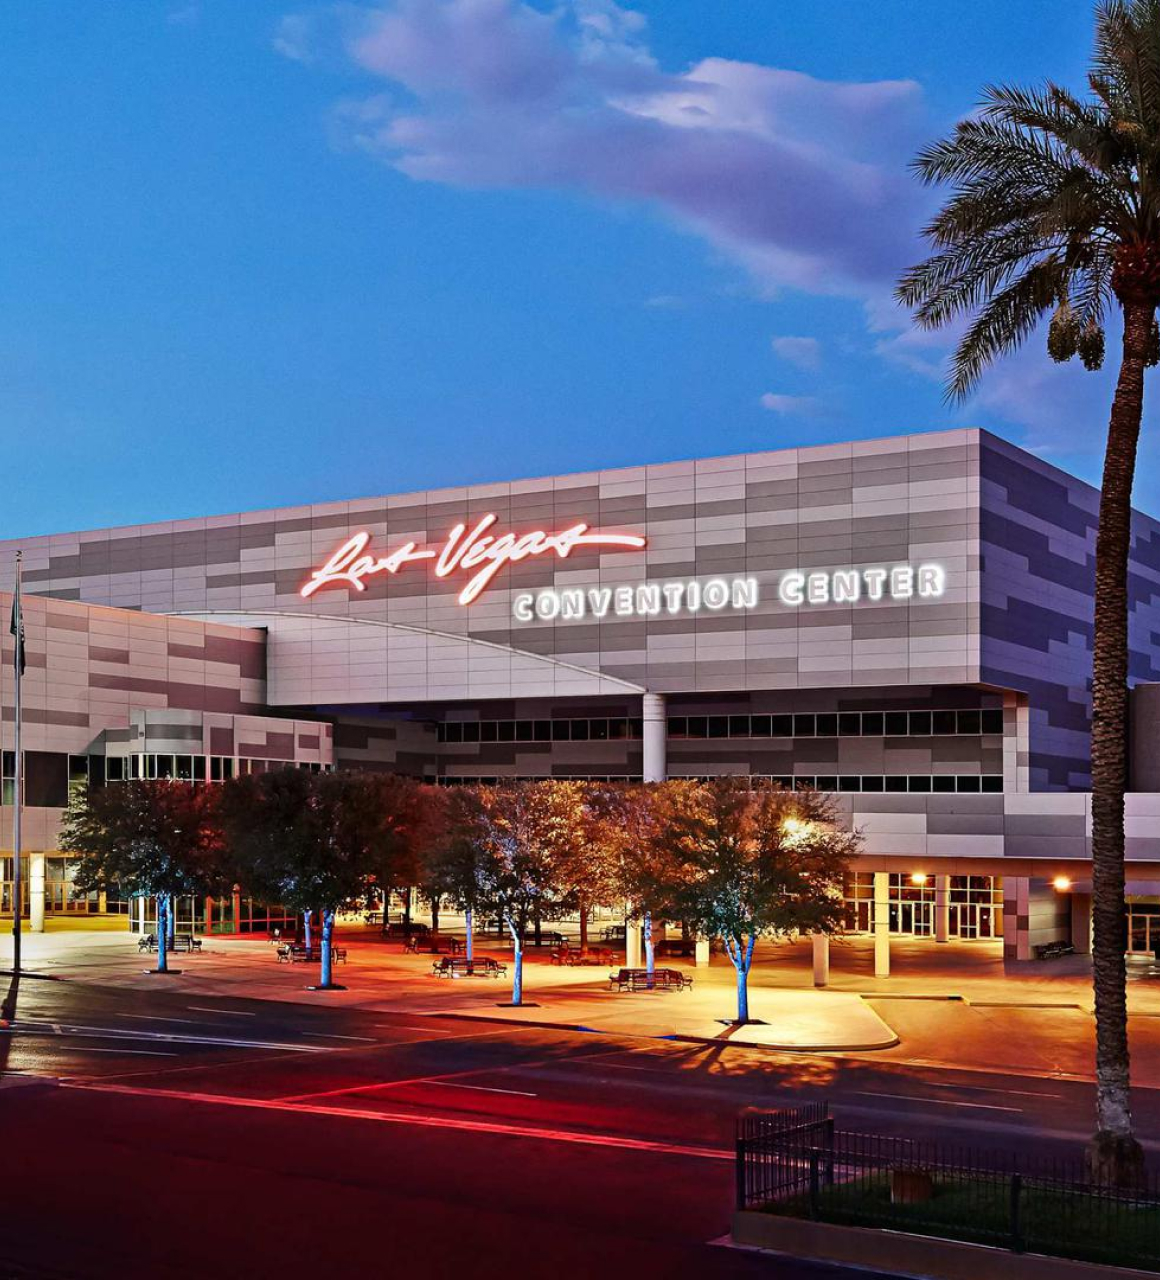 Las Vegas Convention Center exterior shot